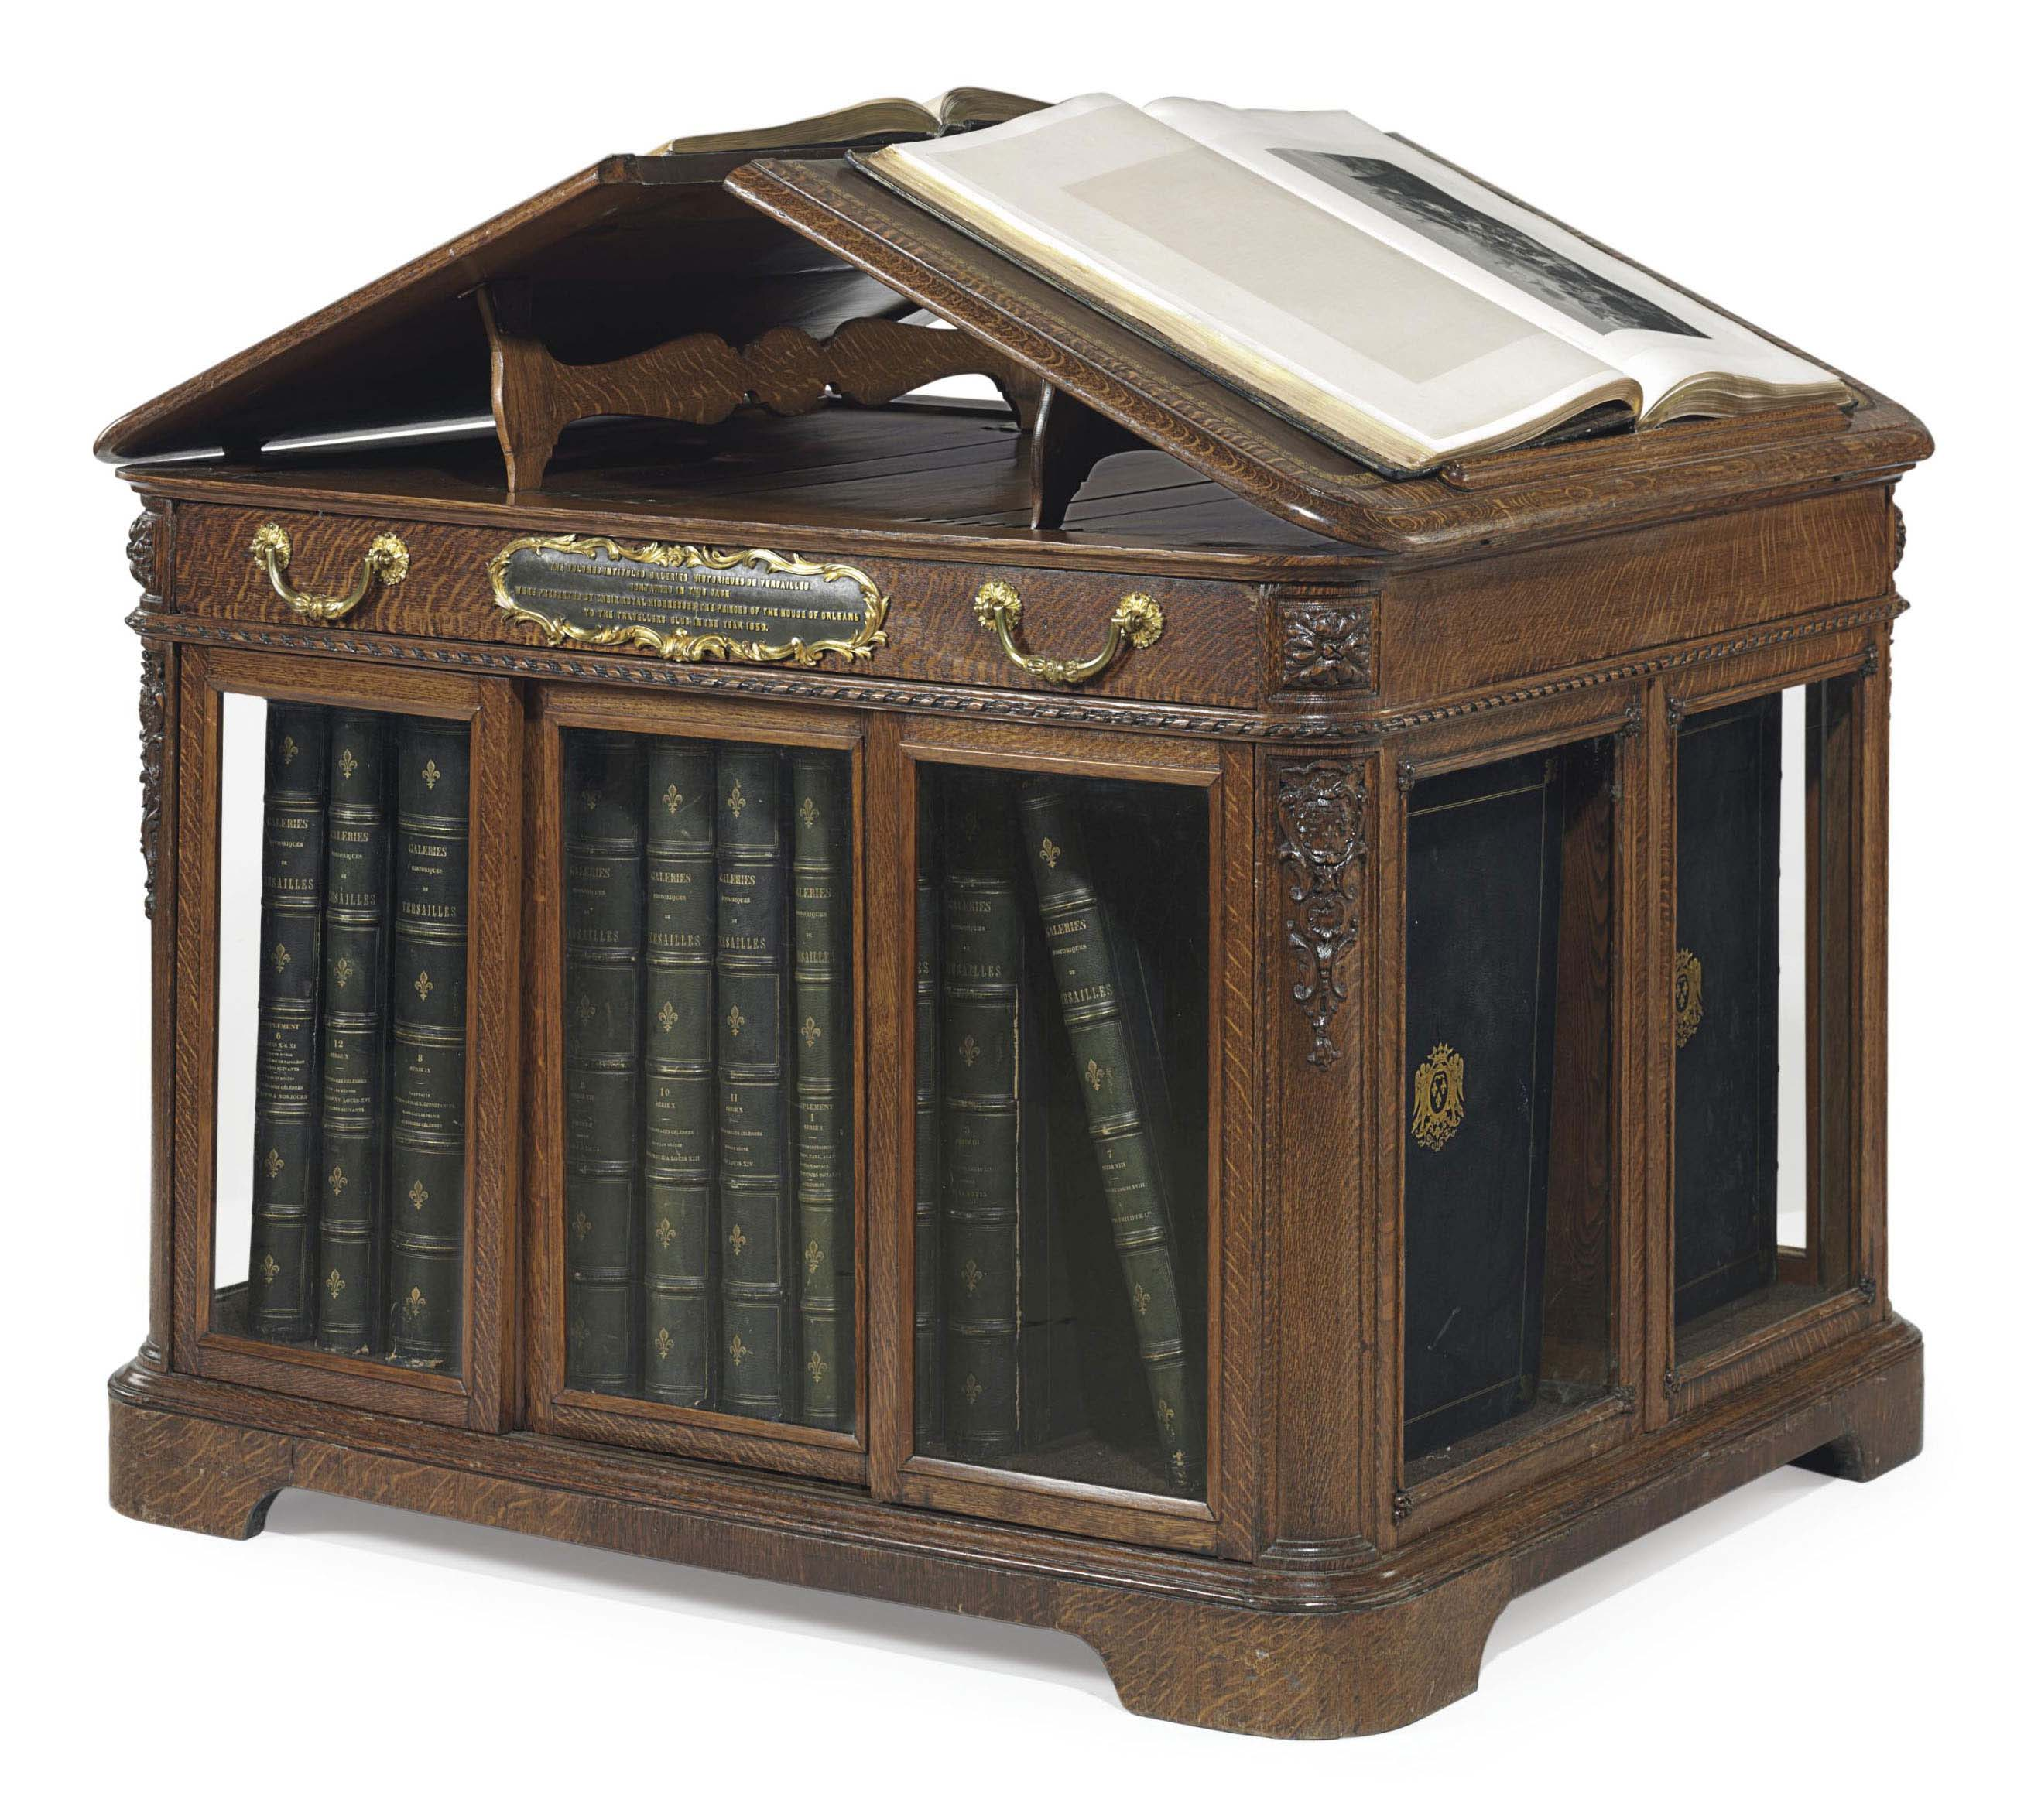 A FRENCH ORMOLU-MOUNTED OAK FOLIO CABINET CONTAINING 18 VOLUMES OF THE GALERIES HISTORIQUES DE VERSAILLES